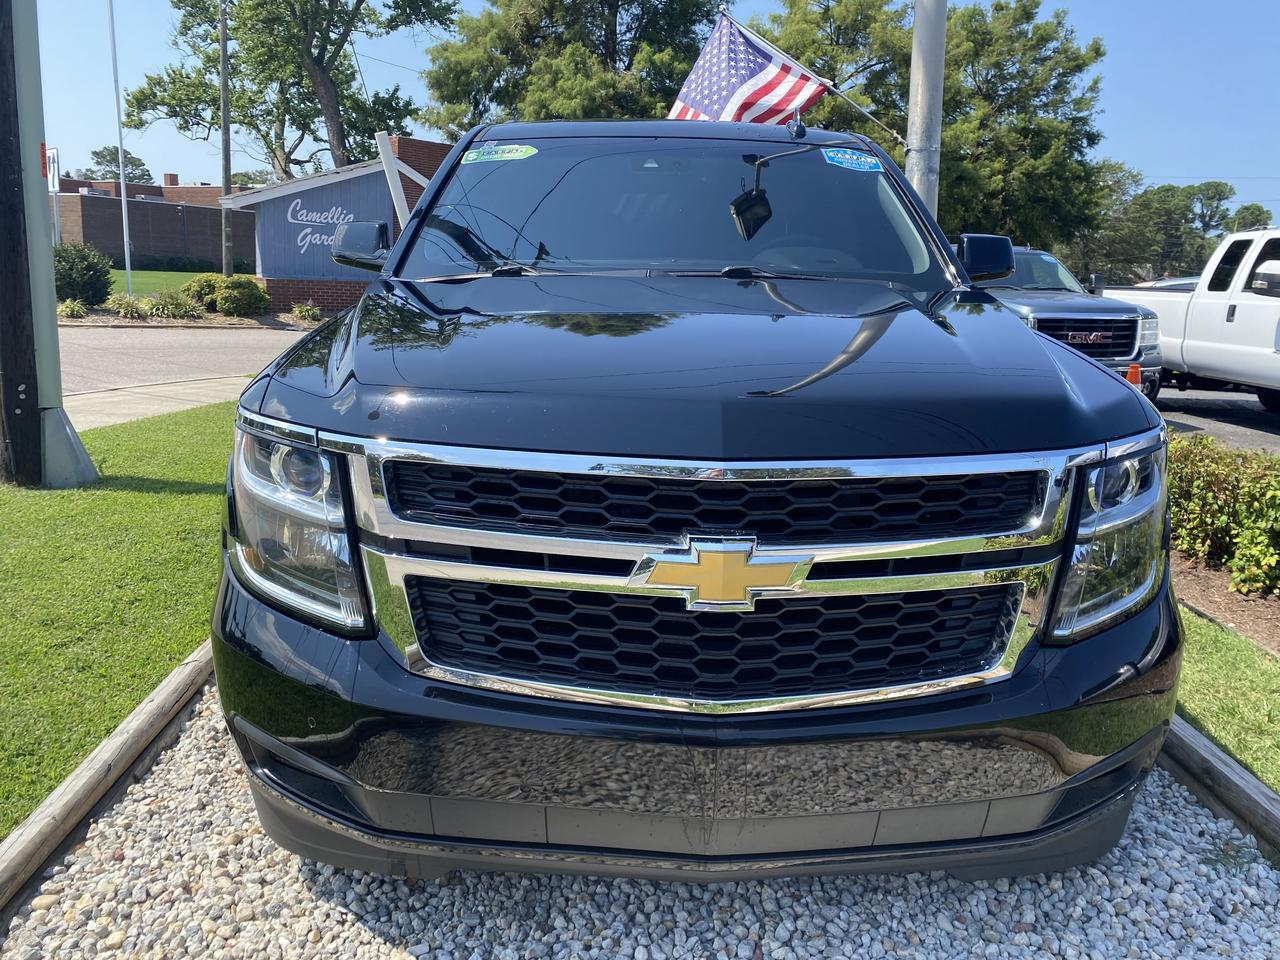 2015 CHEVROLET TAHOE LT, WARRANTY, LEATHER, SUNROOF, NAV, HEATED/COOLED SEATS, 3RD ROW, FULLY LOADED, CLEAN CARFAX! Norfolk VA